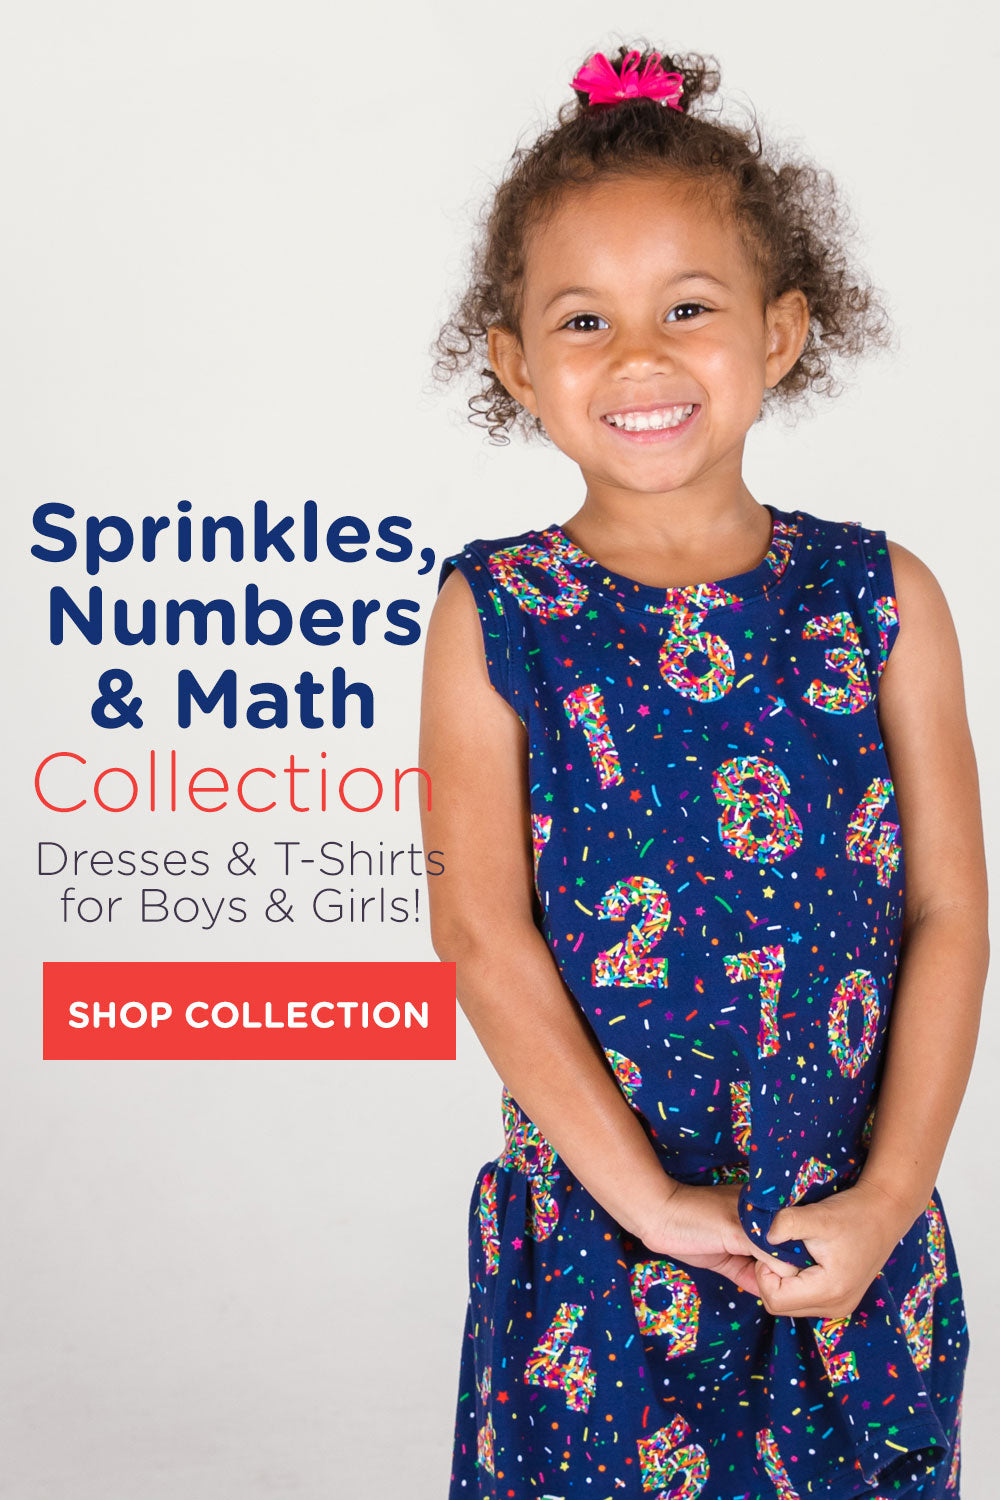 Shop the new Sprinkles, Numbers & Math collection